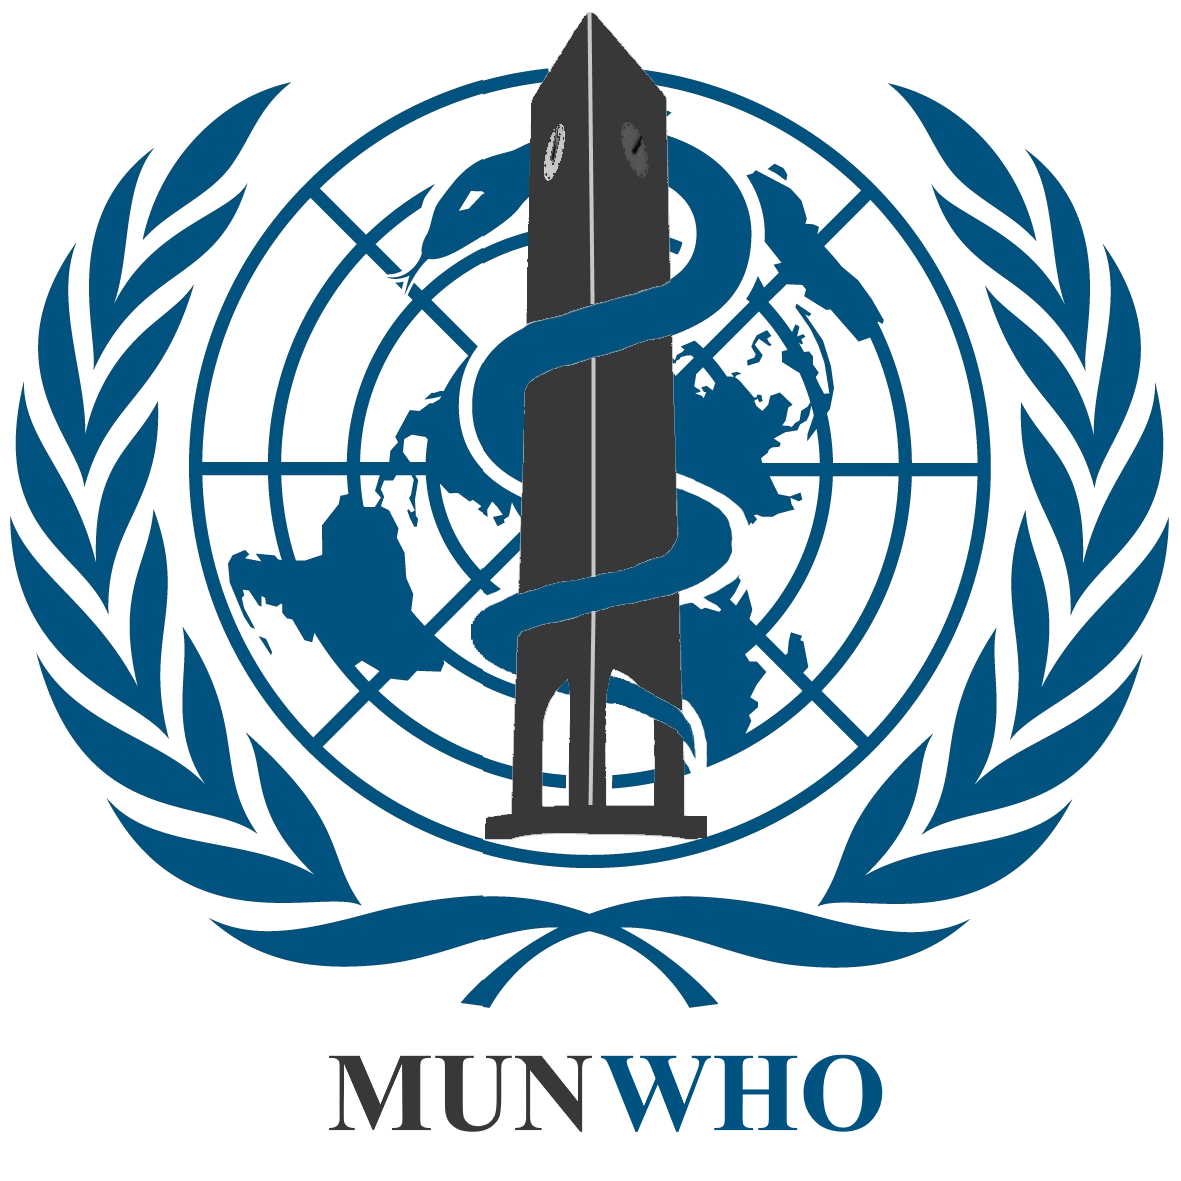 MUN World Health Organization